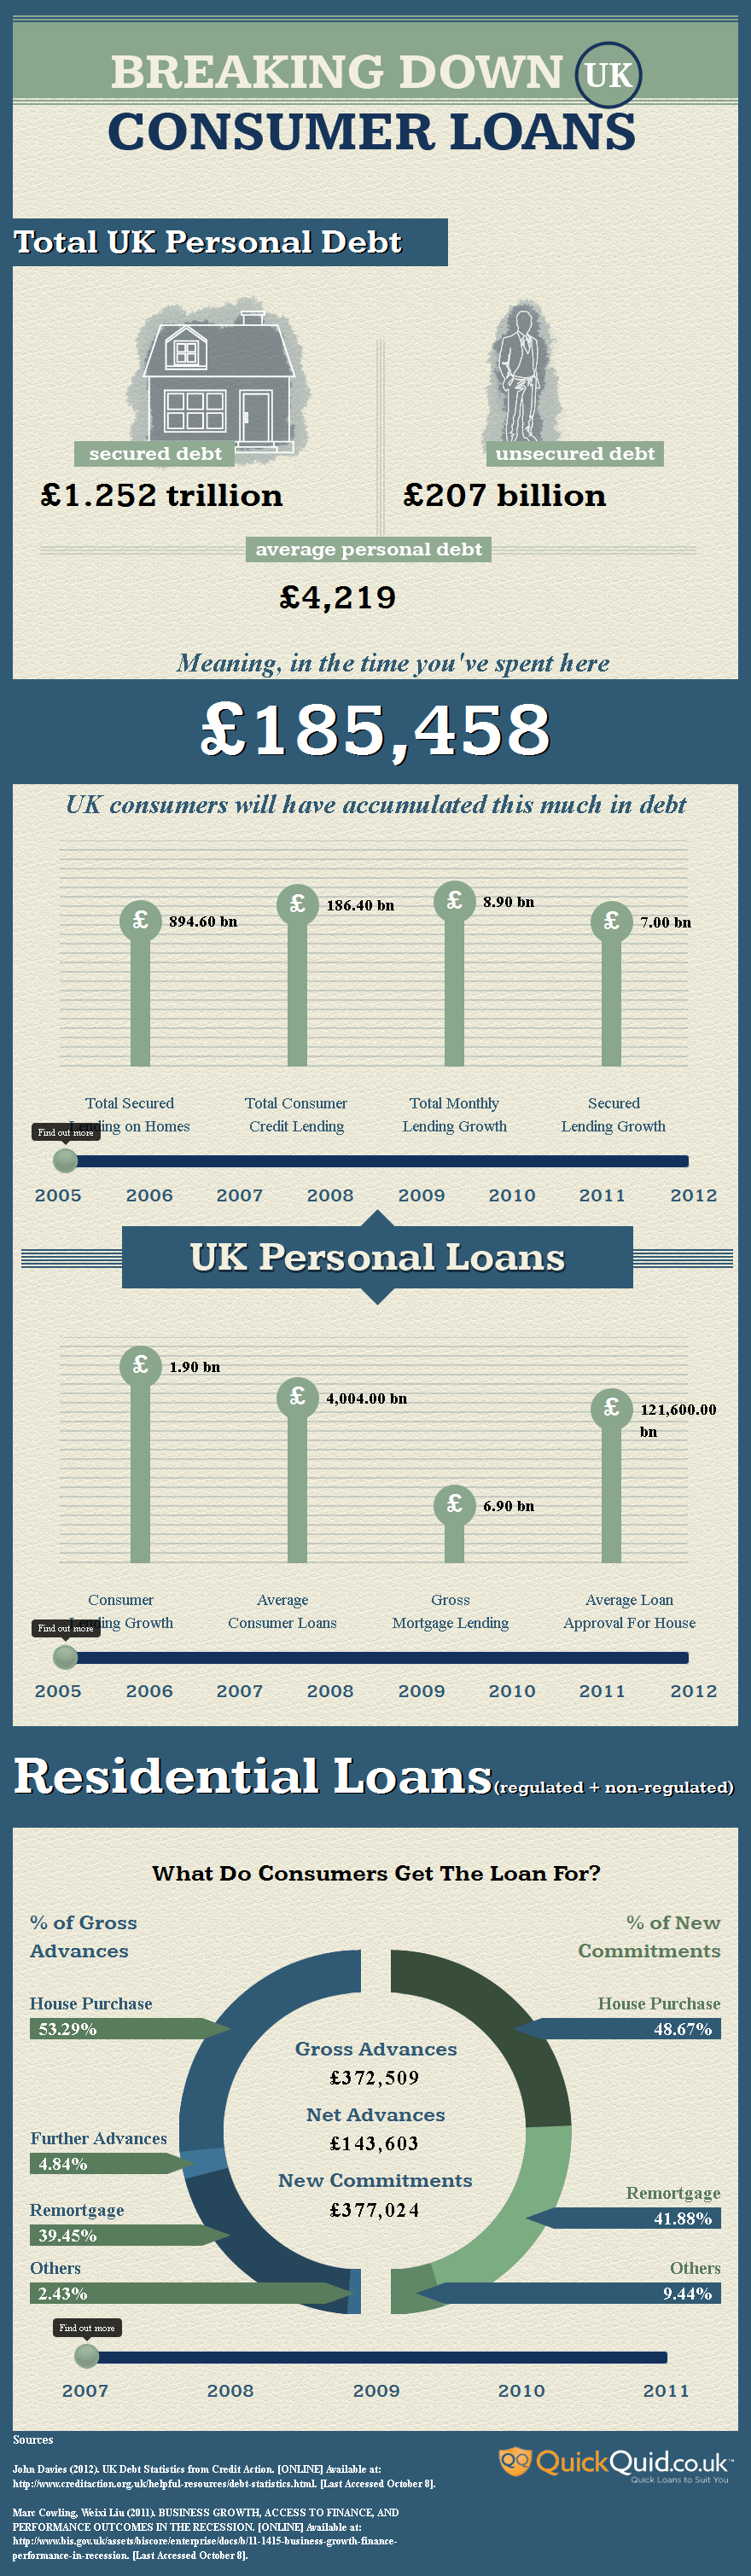 Consumer Loans Continue to Grow